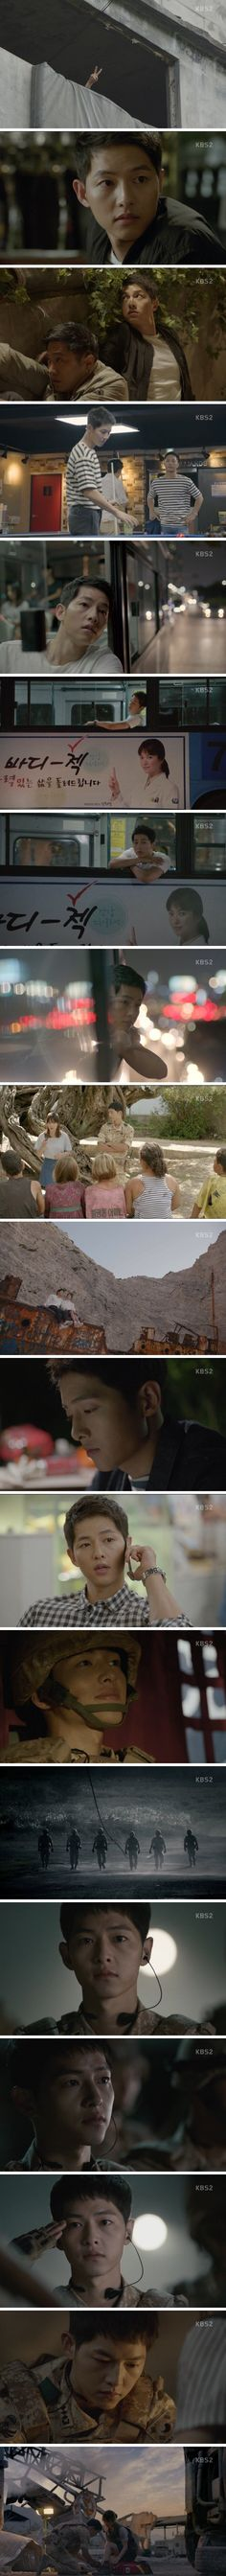 Descendants of the Sun (태양의 후예) Korean - Drama - Episode 6 - Picture @ HanCinema :: The Korean Movie and Drama Database